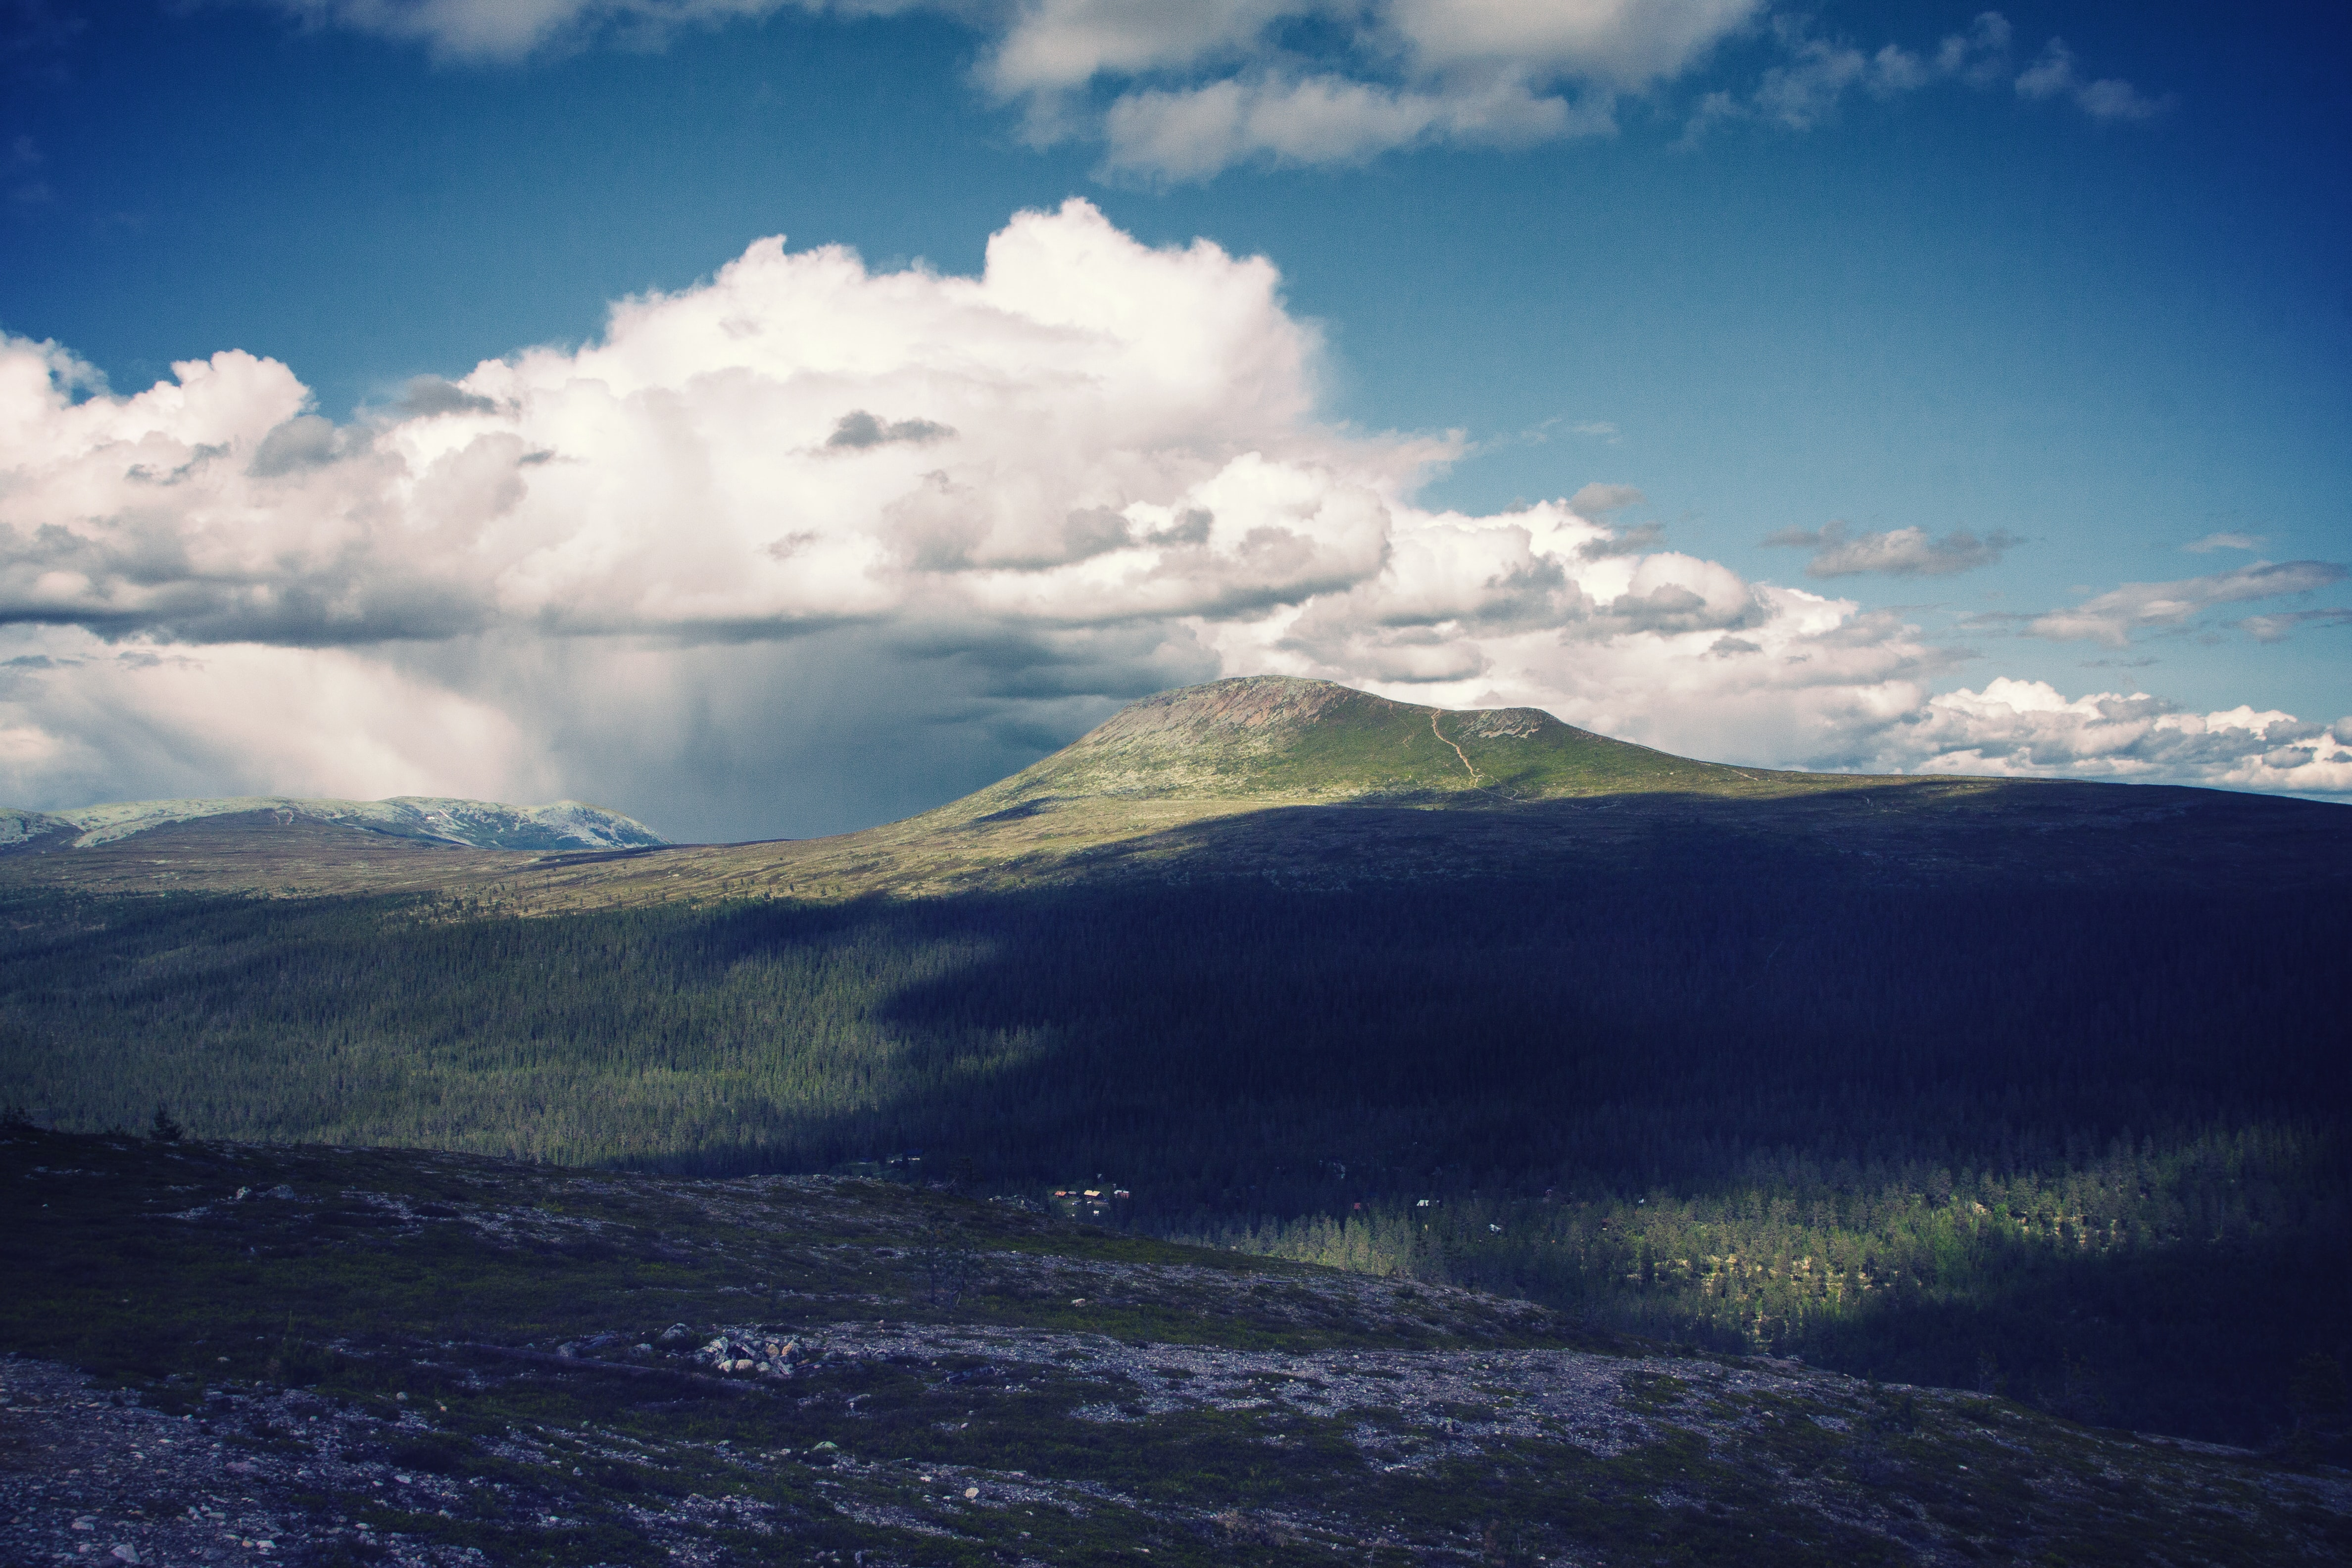 Shadows of clouds on a vast forest in the highlands